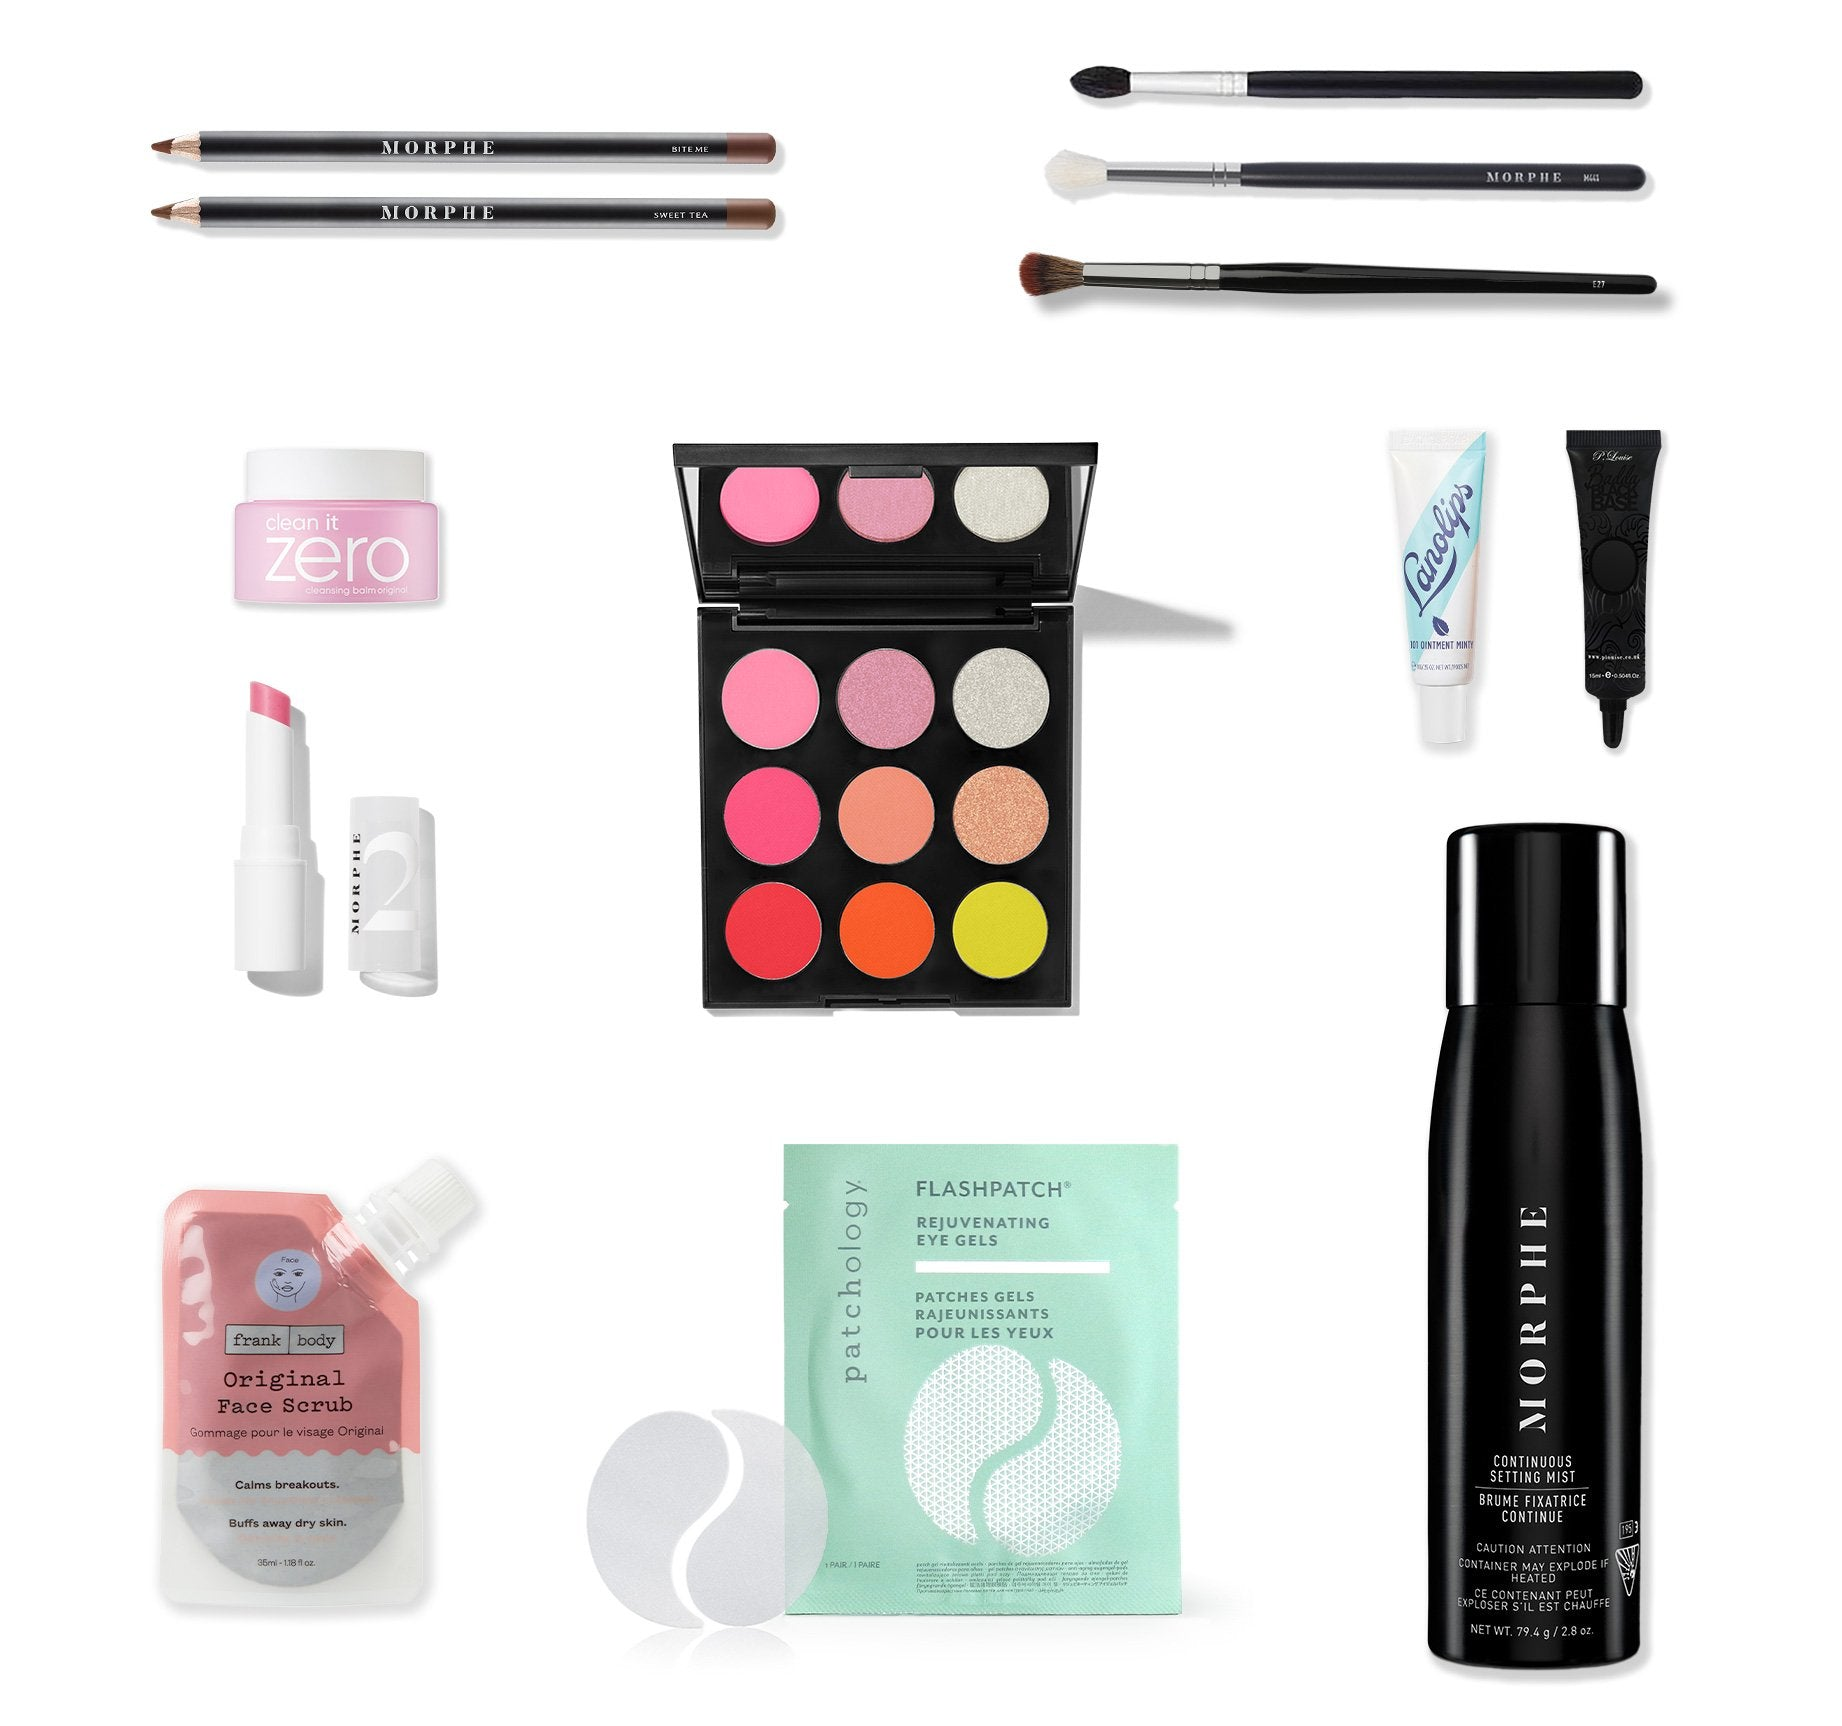 DECK THE HAUL 13-PIECE MAKEUP & SKINCARE COLLECTION, view larger image